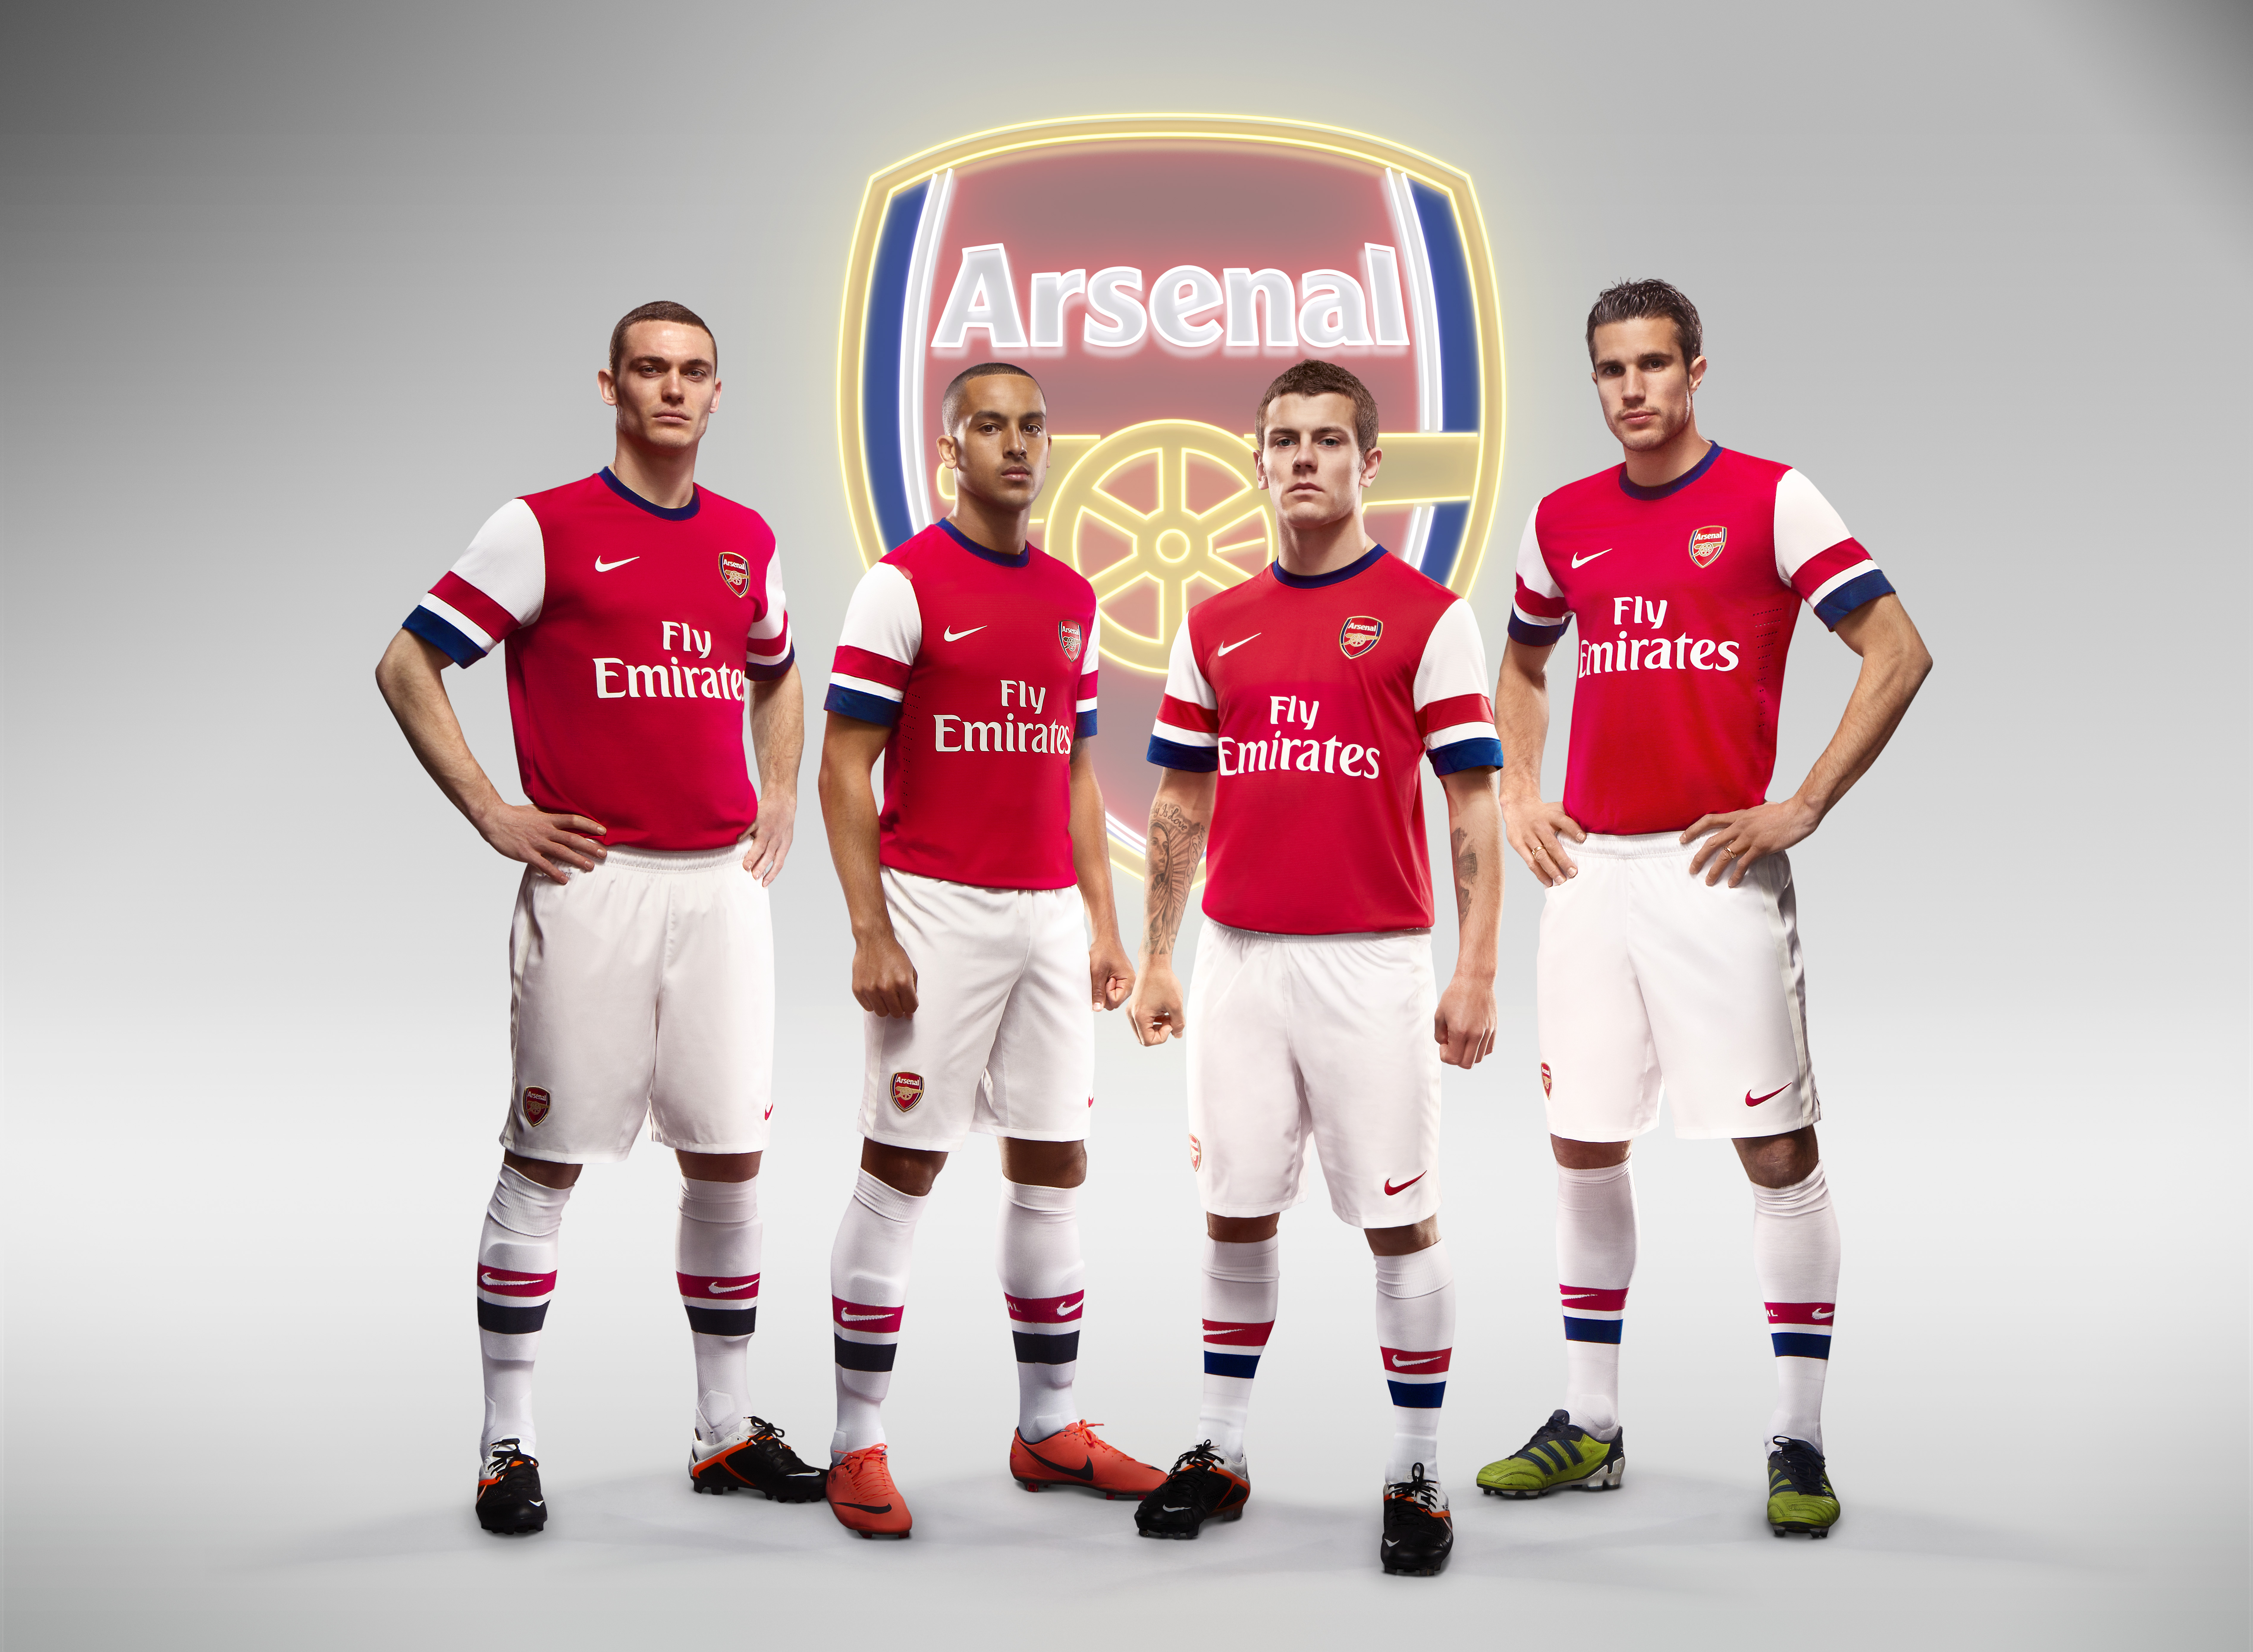 3f1a3db5e arsenal kit store on sale   OFF30% Discounts